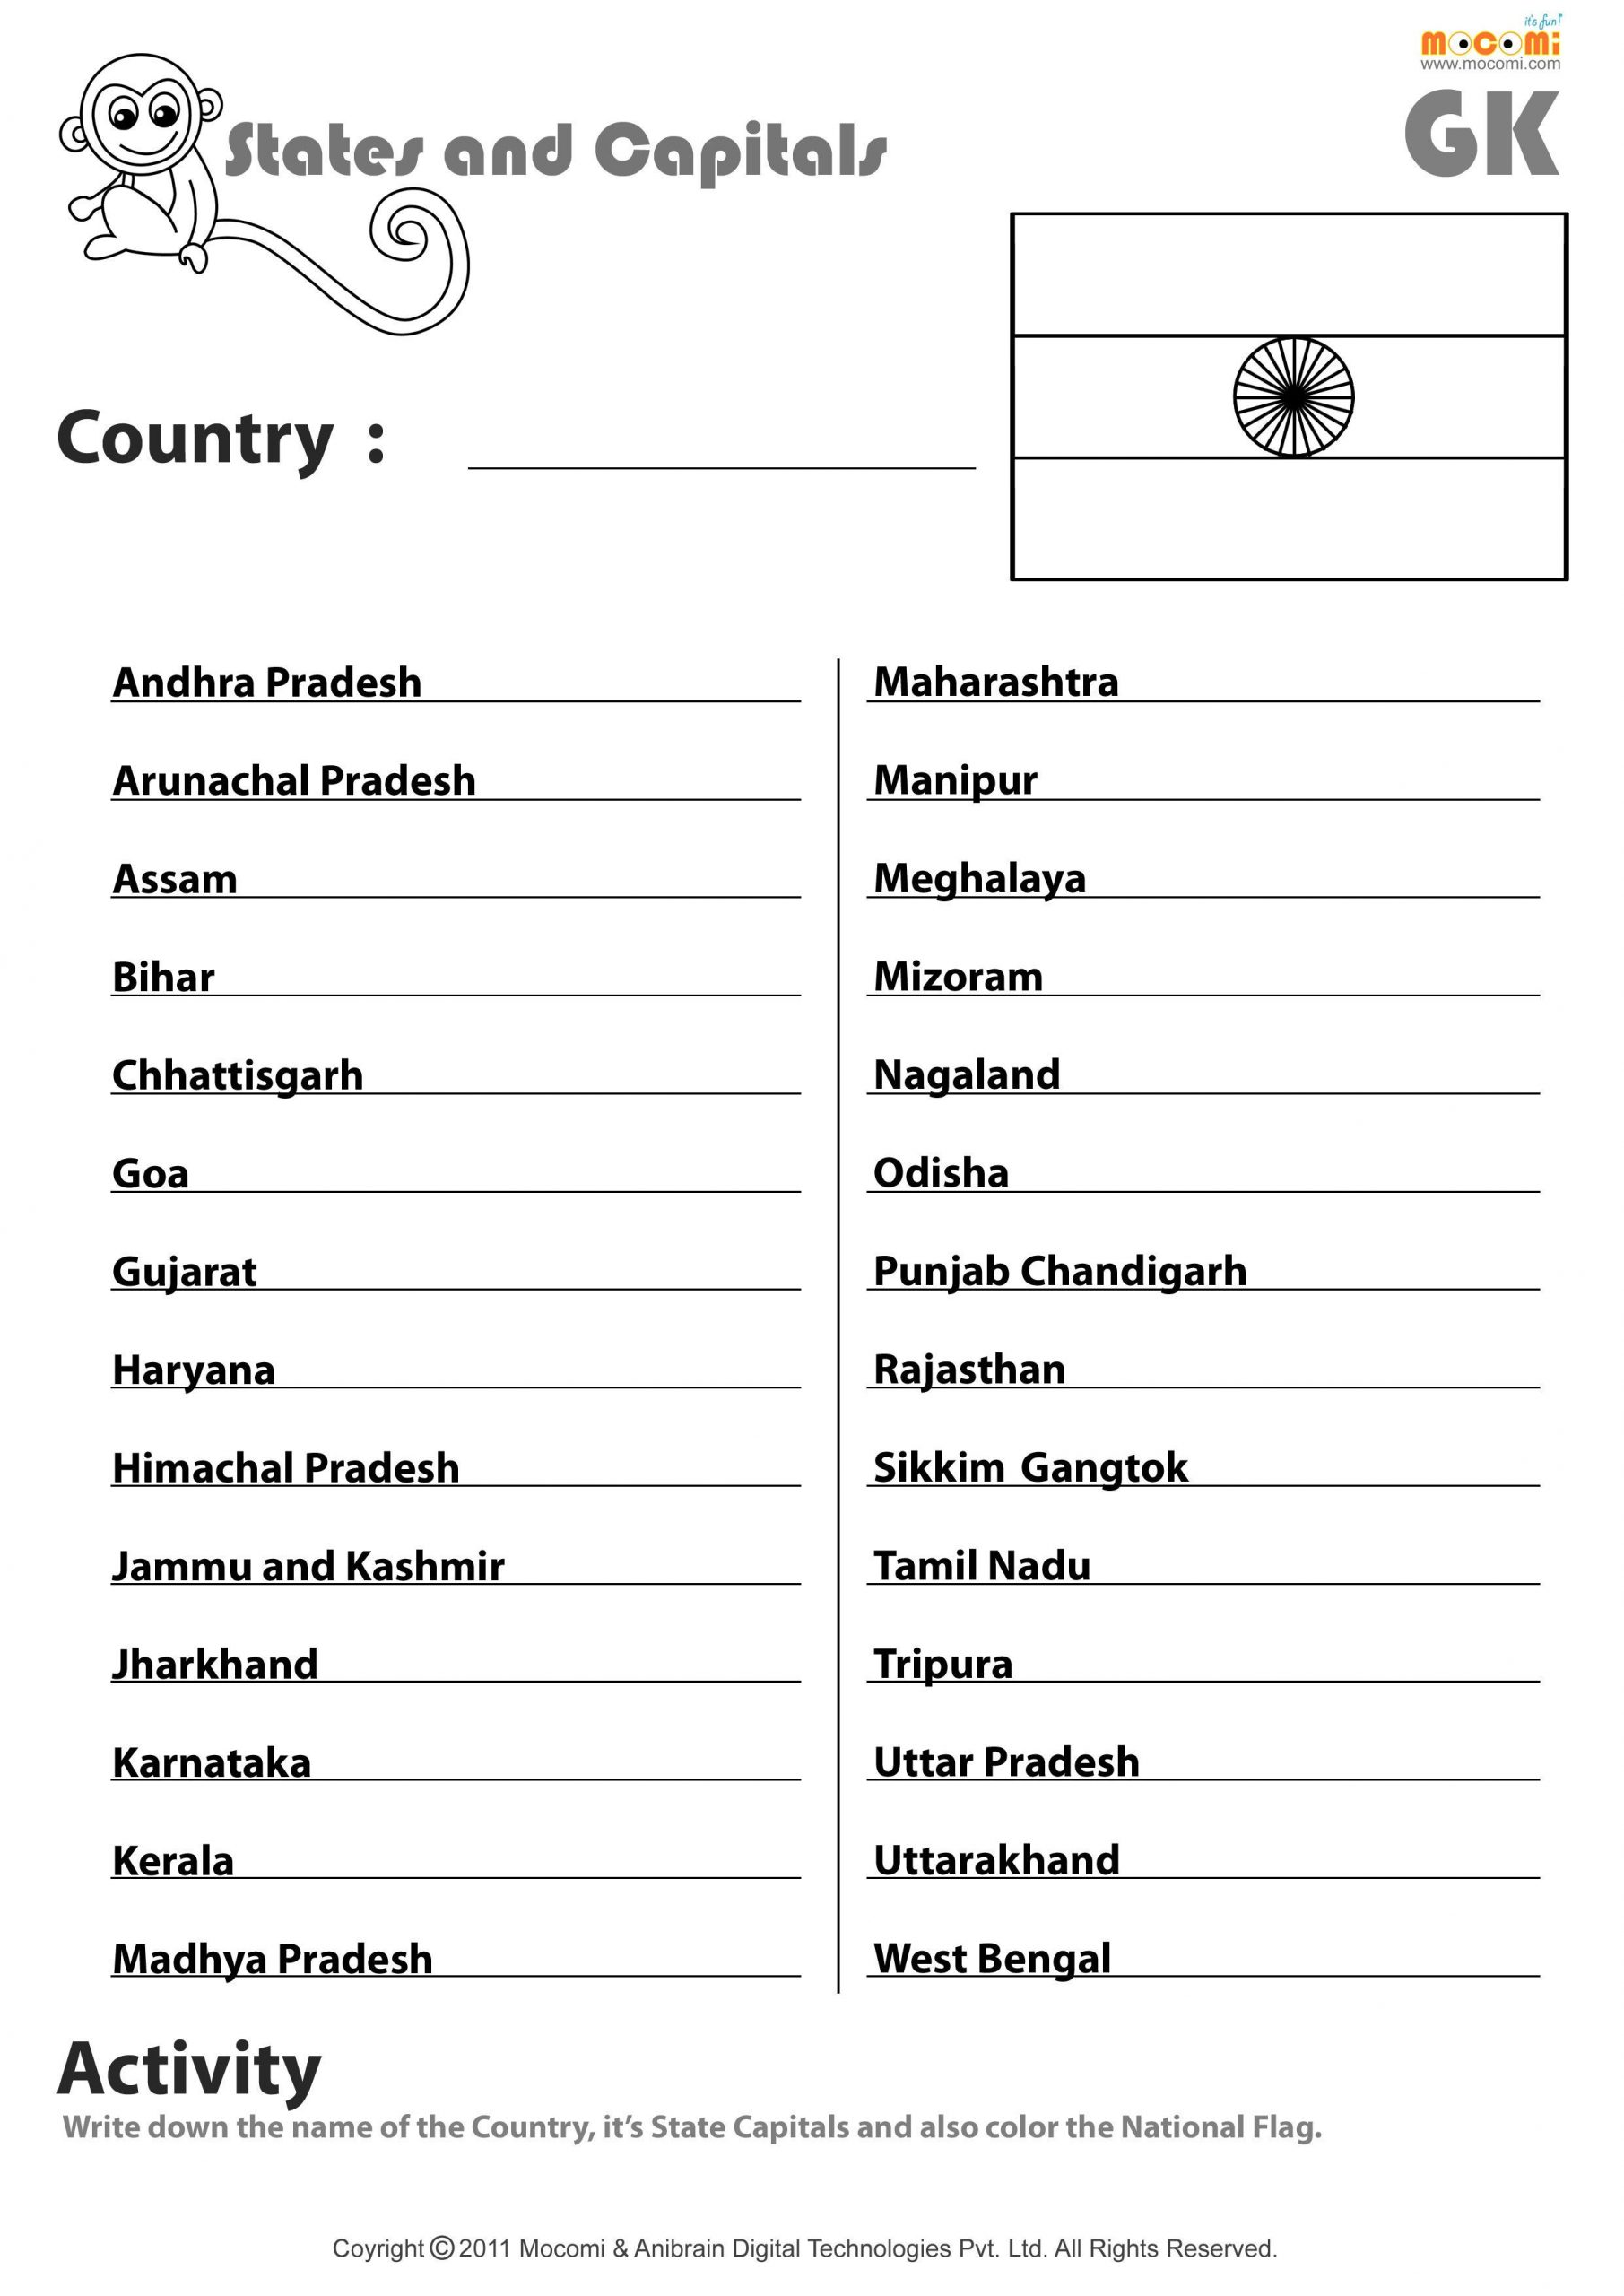 Indian States And Their Capitals English Worksheets for